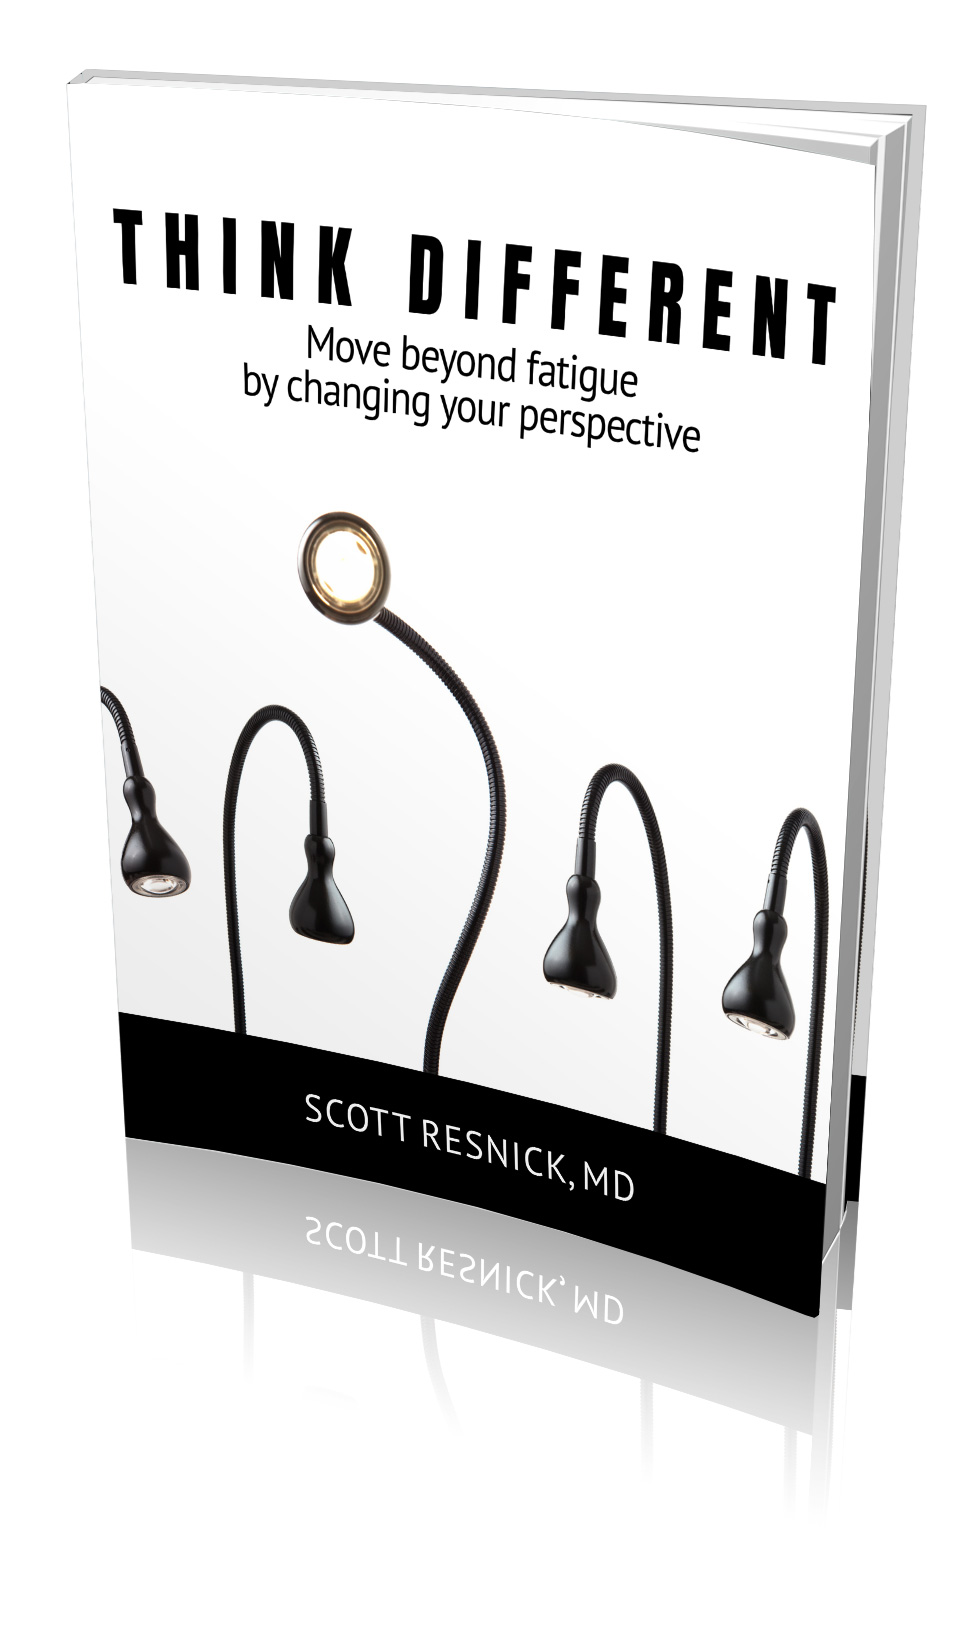 Think Different, by Scott Resnick